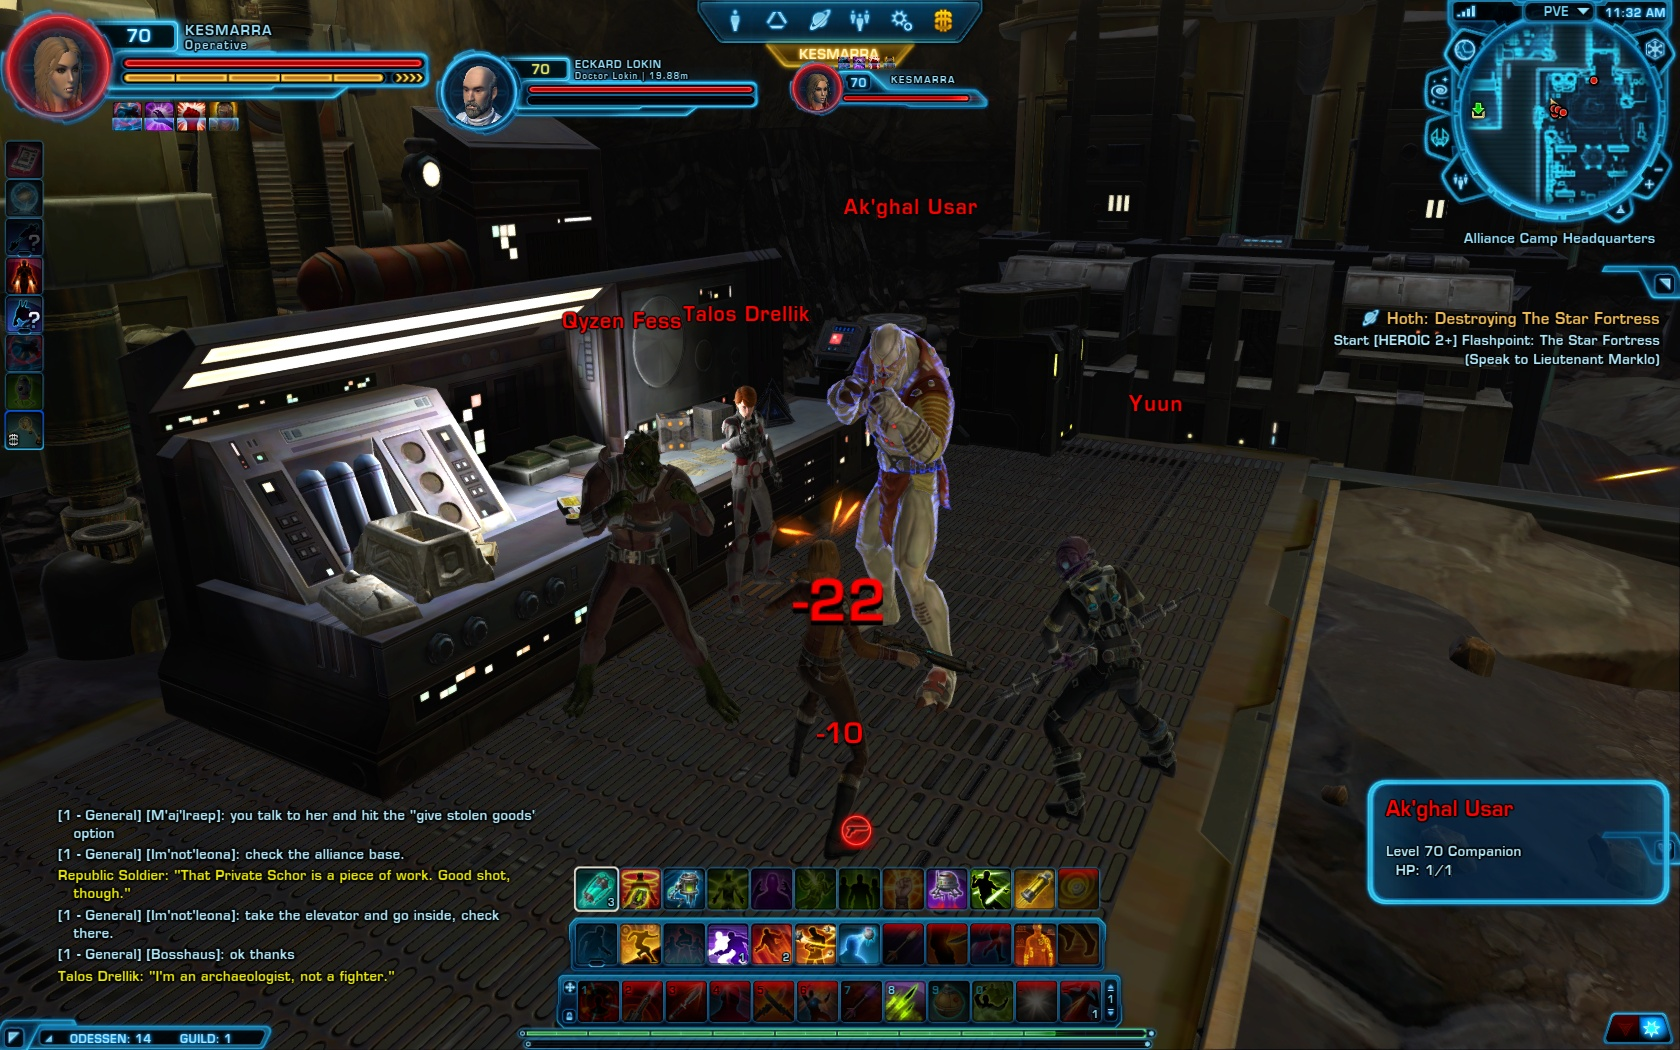 STAR WARS: The Old Republic - ODESSEN IS TRYING TO KILL ME